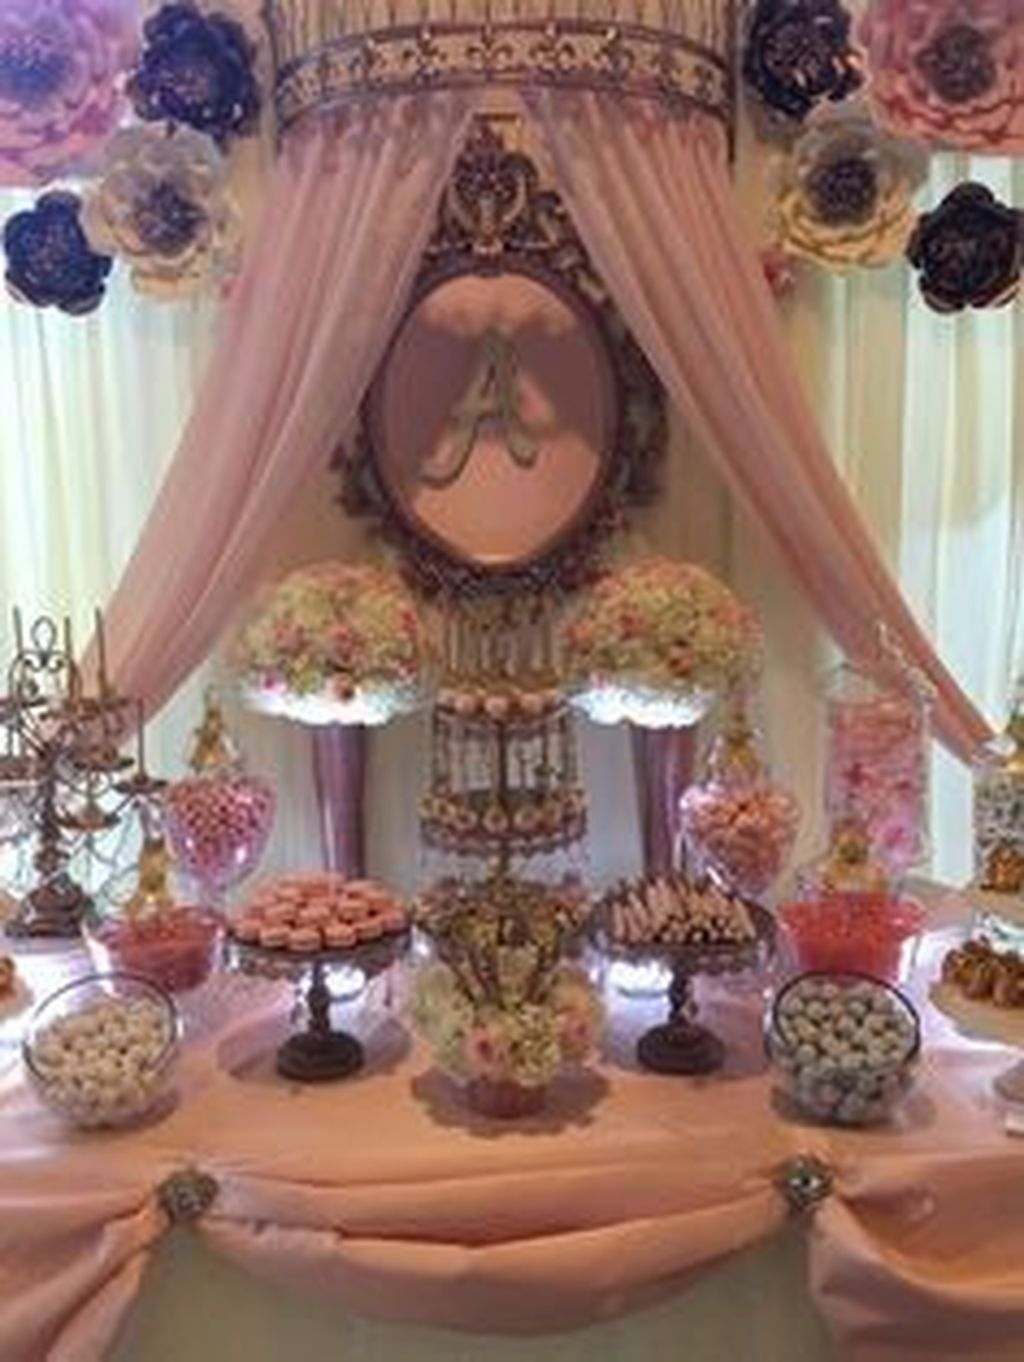 Wedding room decoration ideas 2018   Best Quince Decorations Ideas For Your Party  Quince decorations